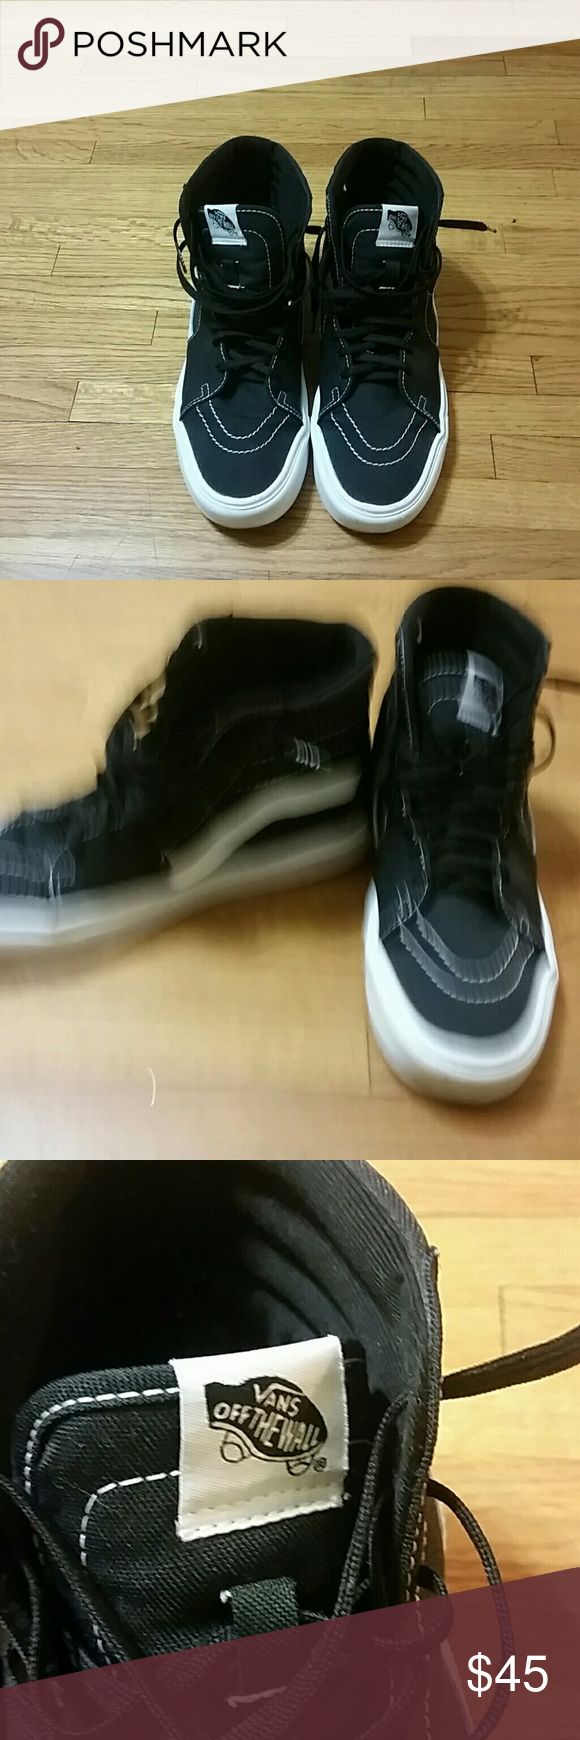 Vans skate high shoes black And white size 9.0 Vans skate hi shoes black and white size 9 great condition Vans Shoes Sneakers